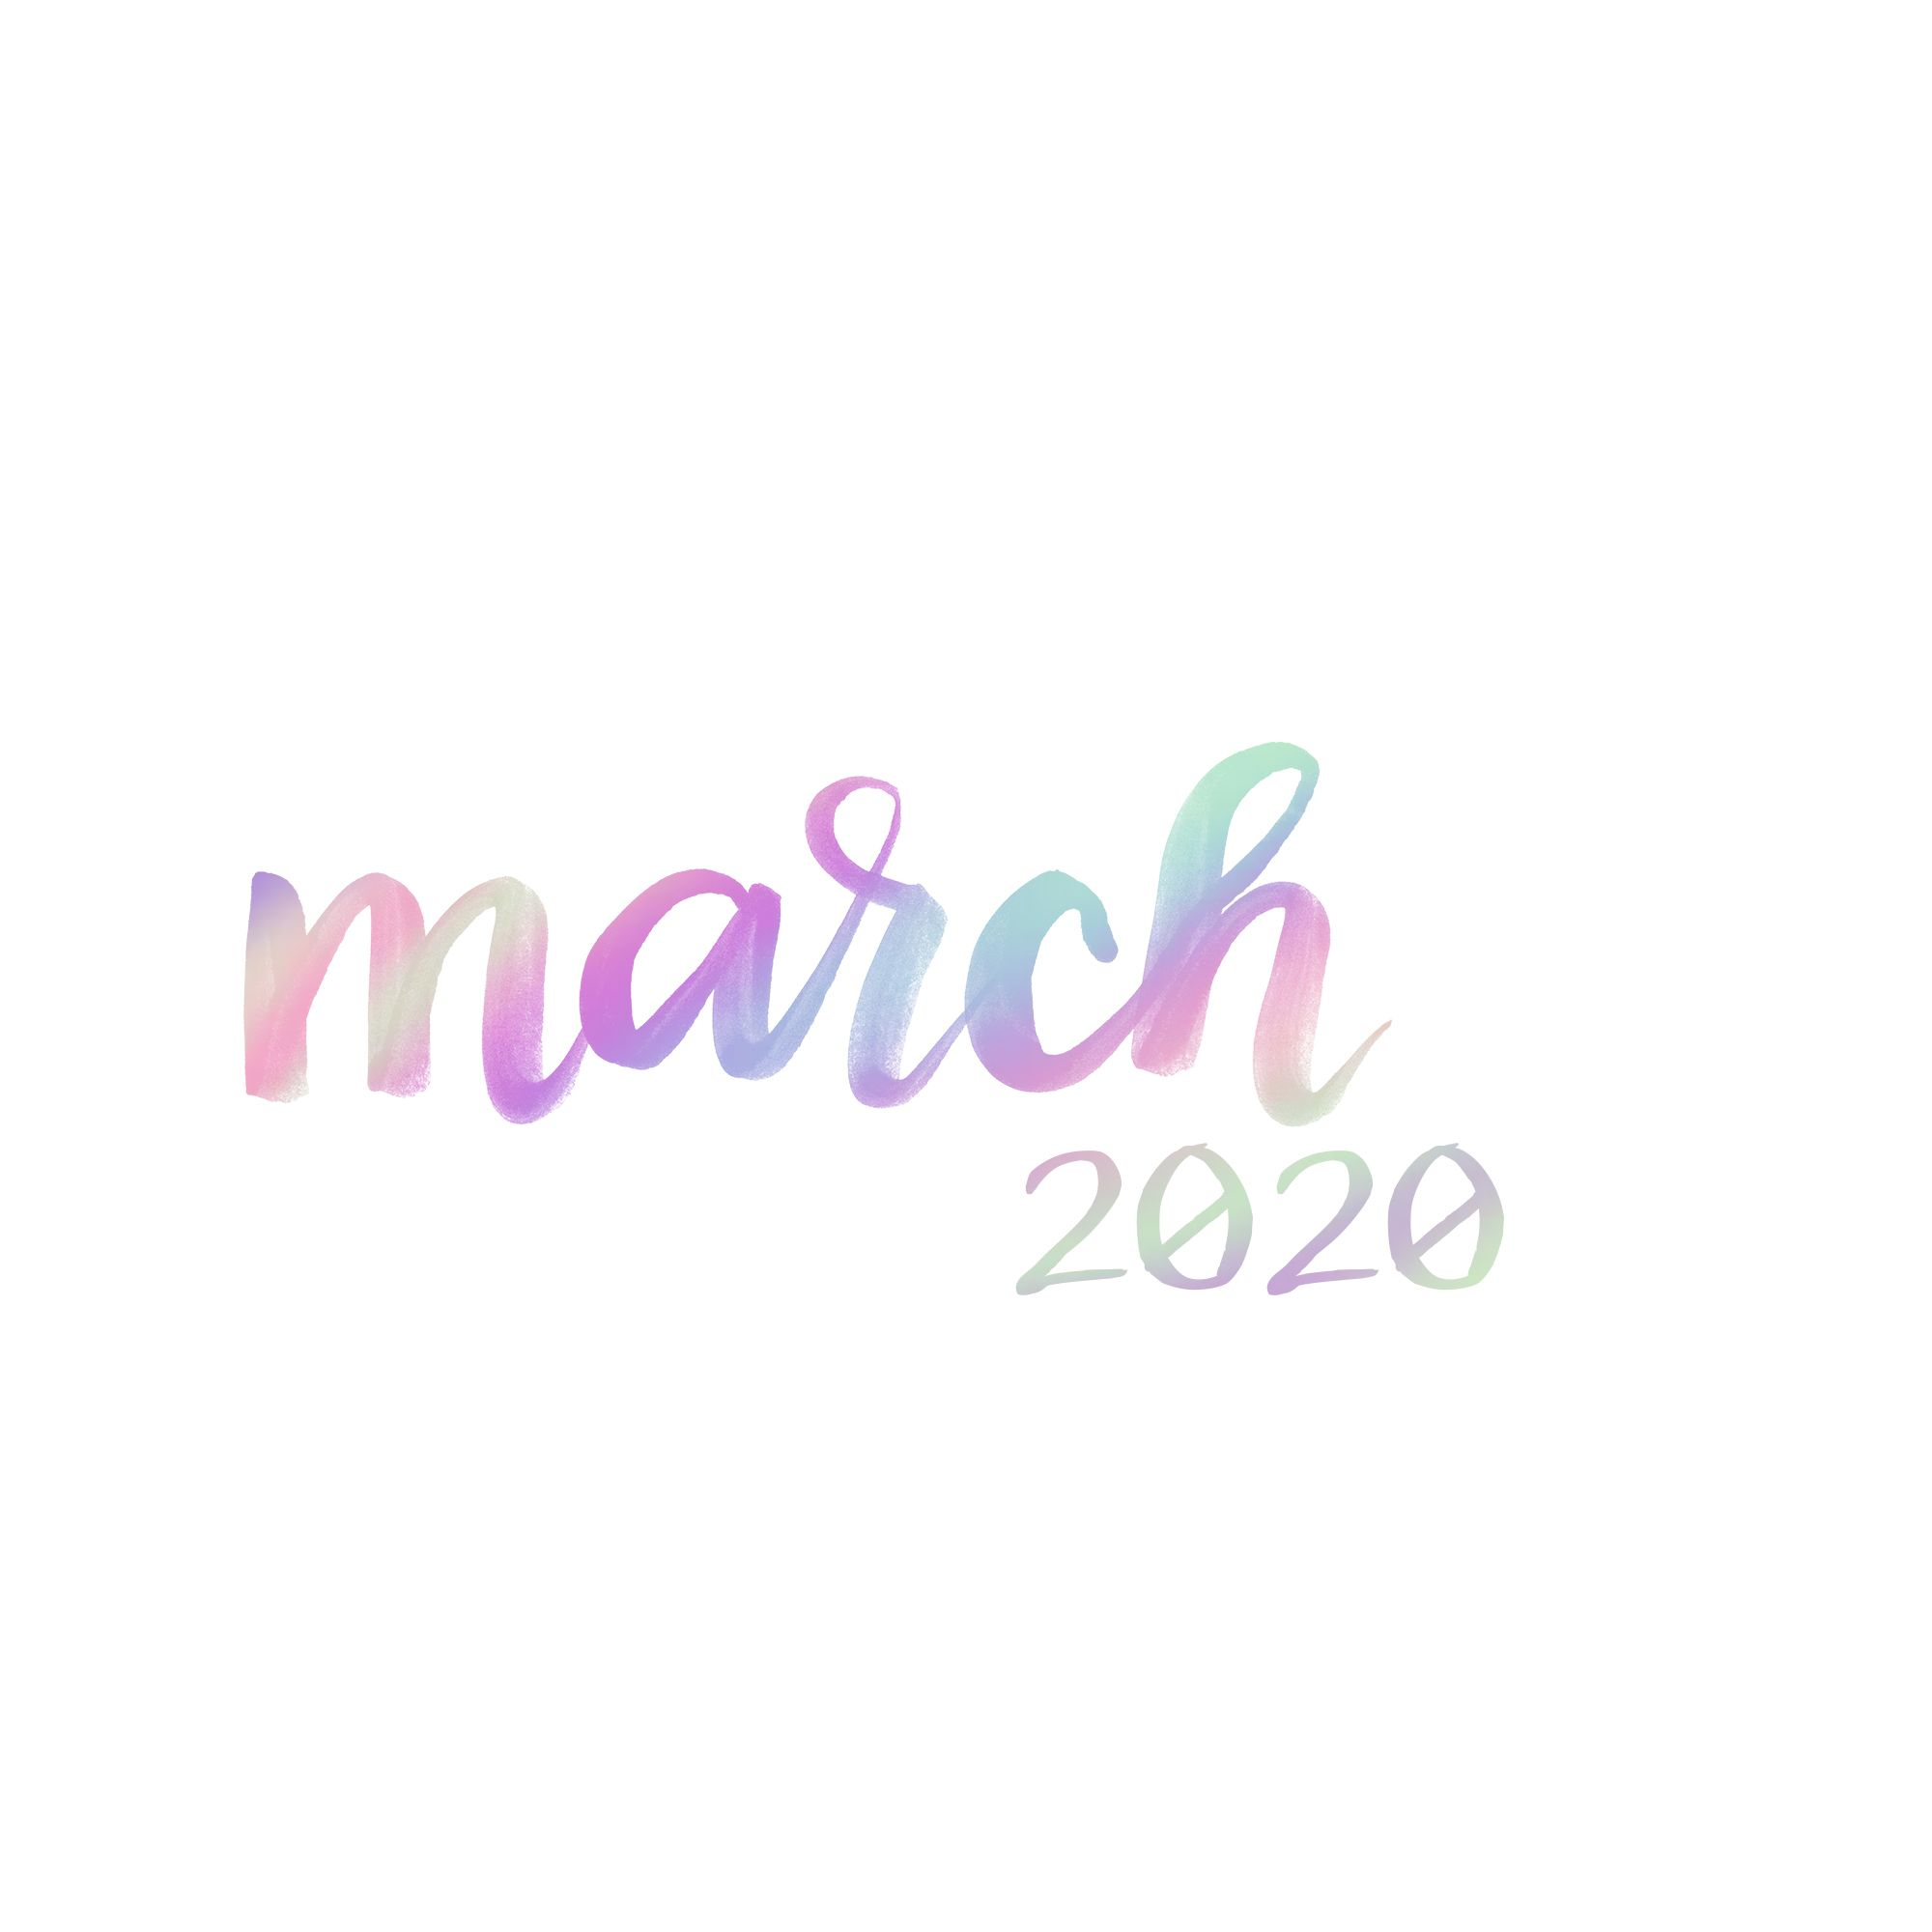 2020 is a Fresh New Year and 7 awesome 2020 Calendar Finds